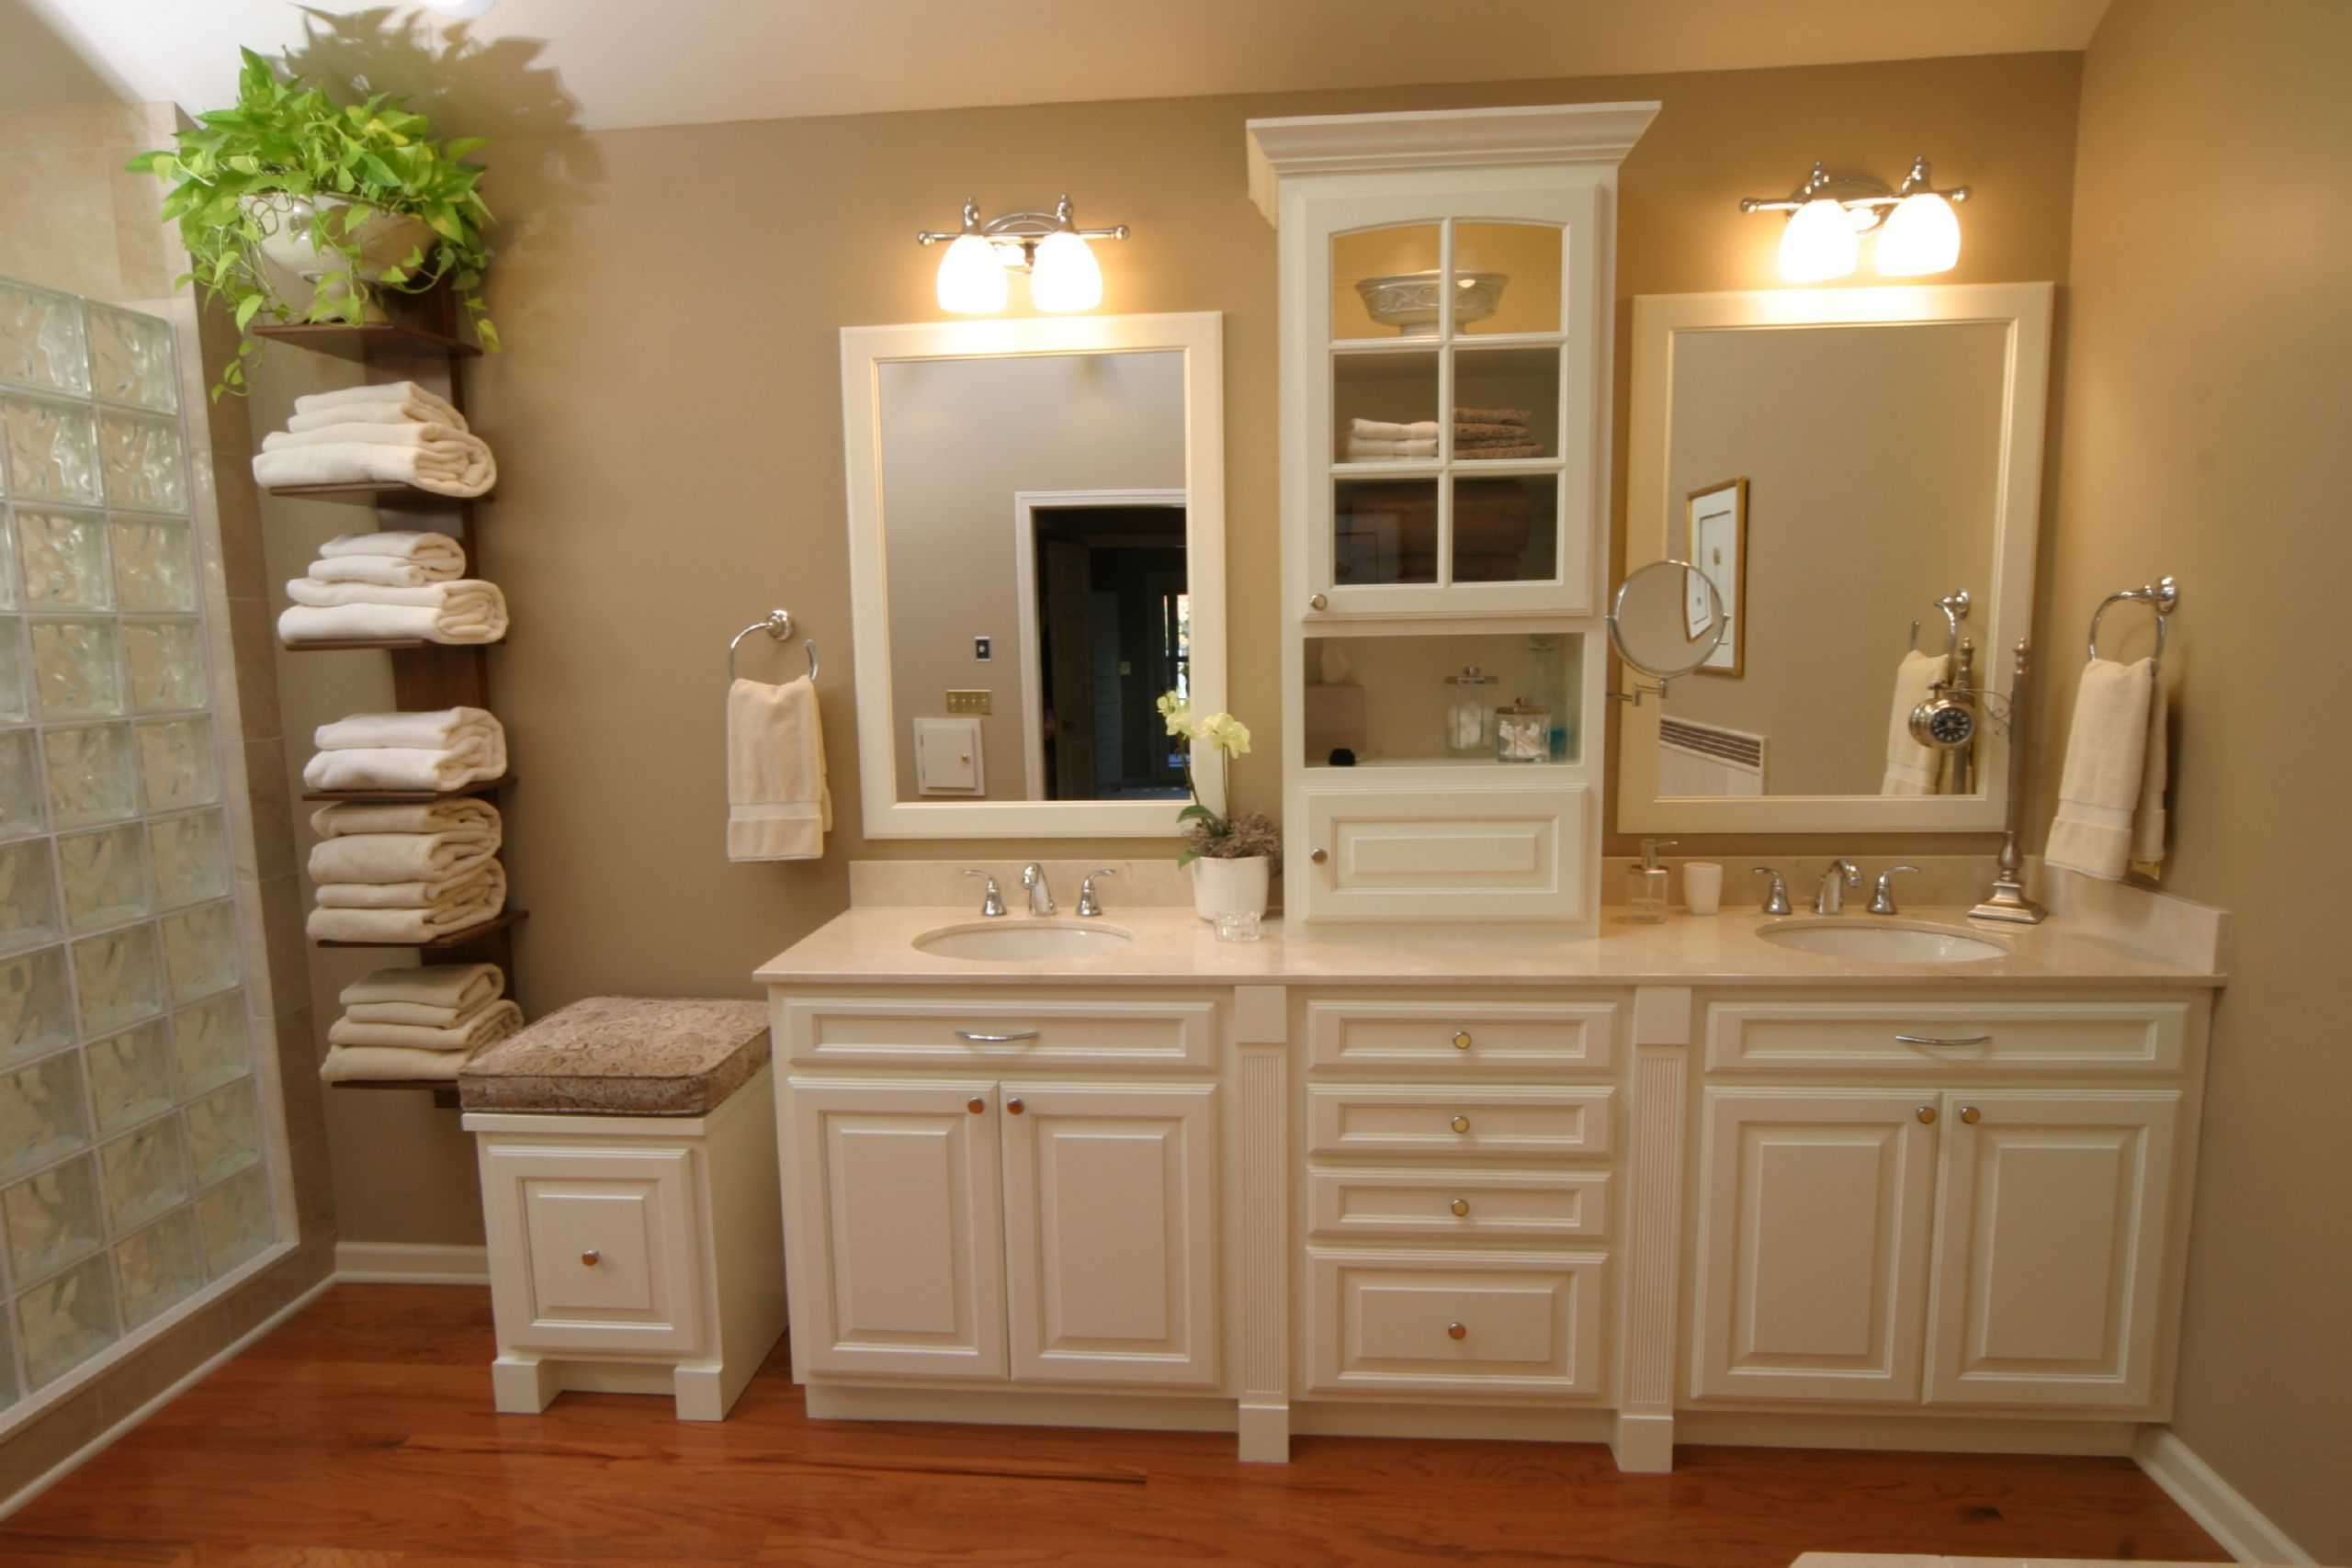 Distinguished Diy Bathroom Counter Storage Bathroom Counter within size 2560 X 1707